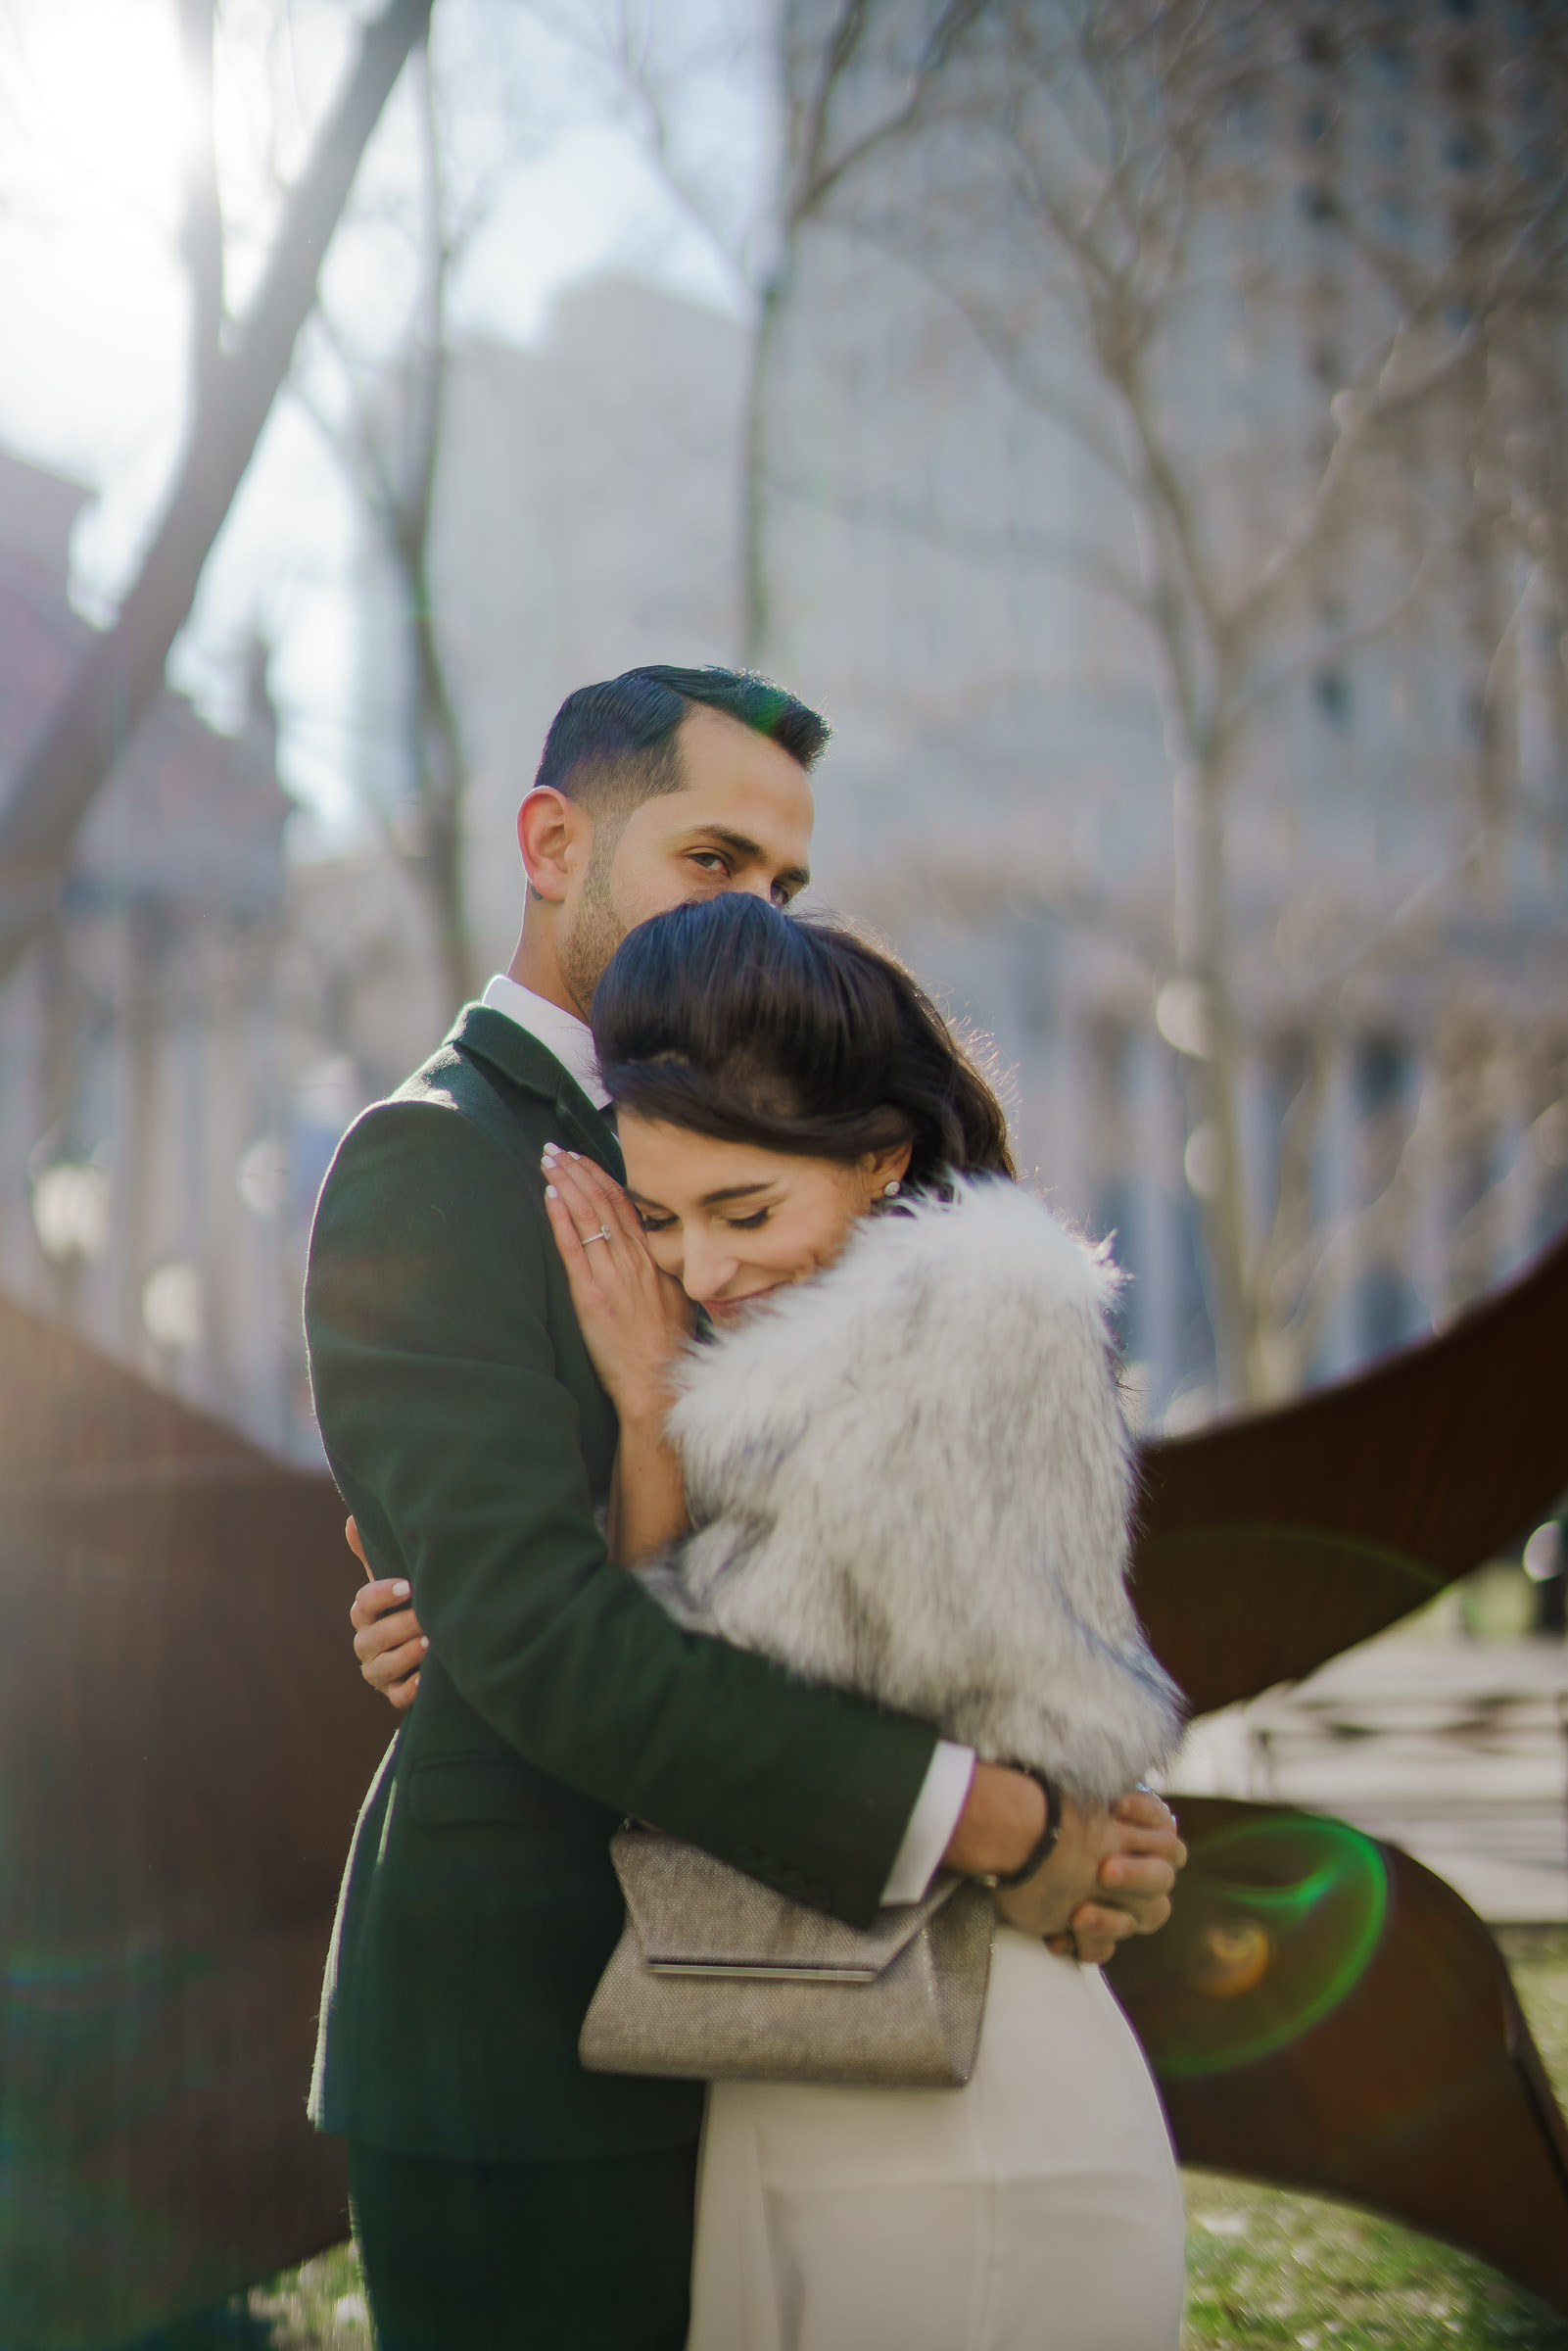 Couple embraces in the park - photo by The Brenizers